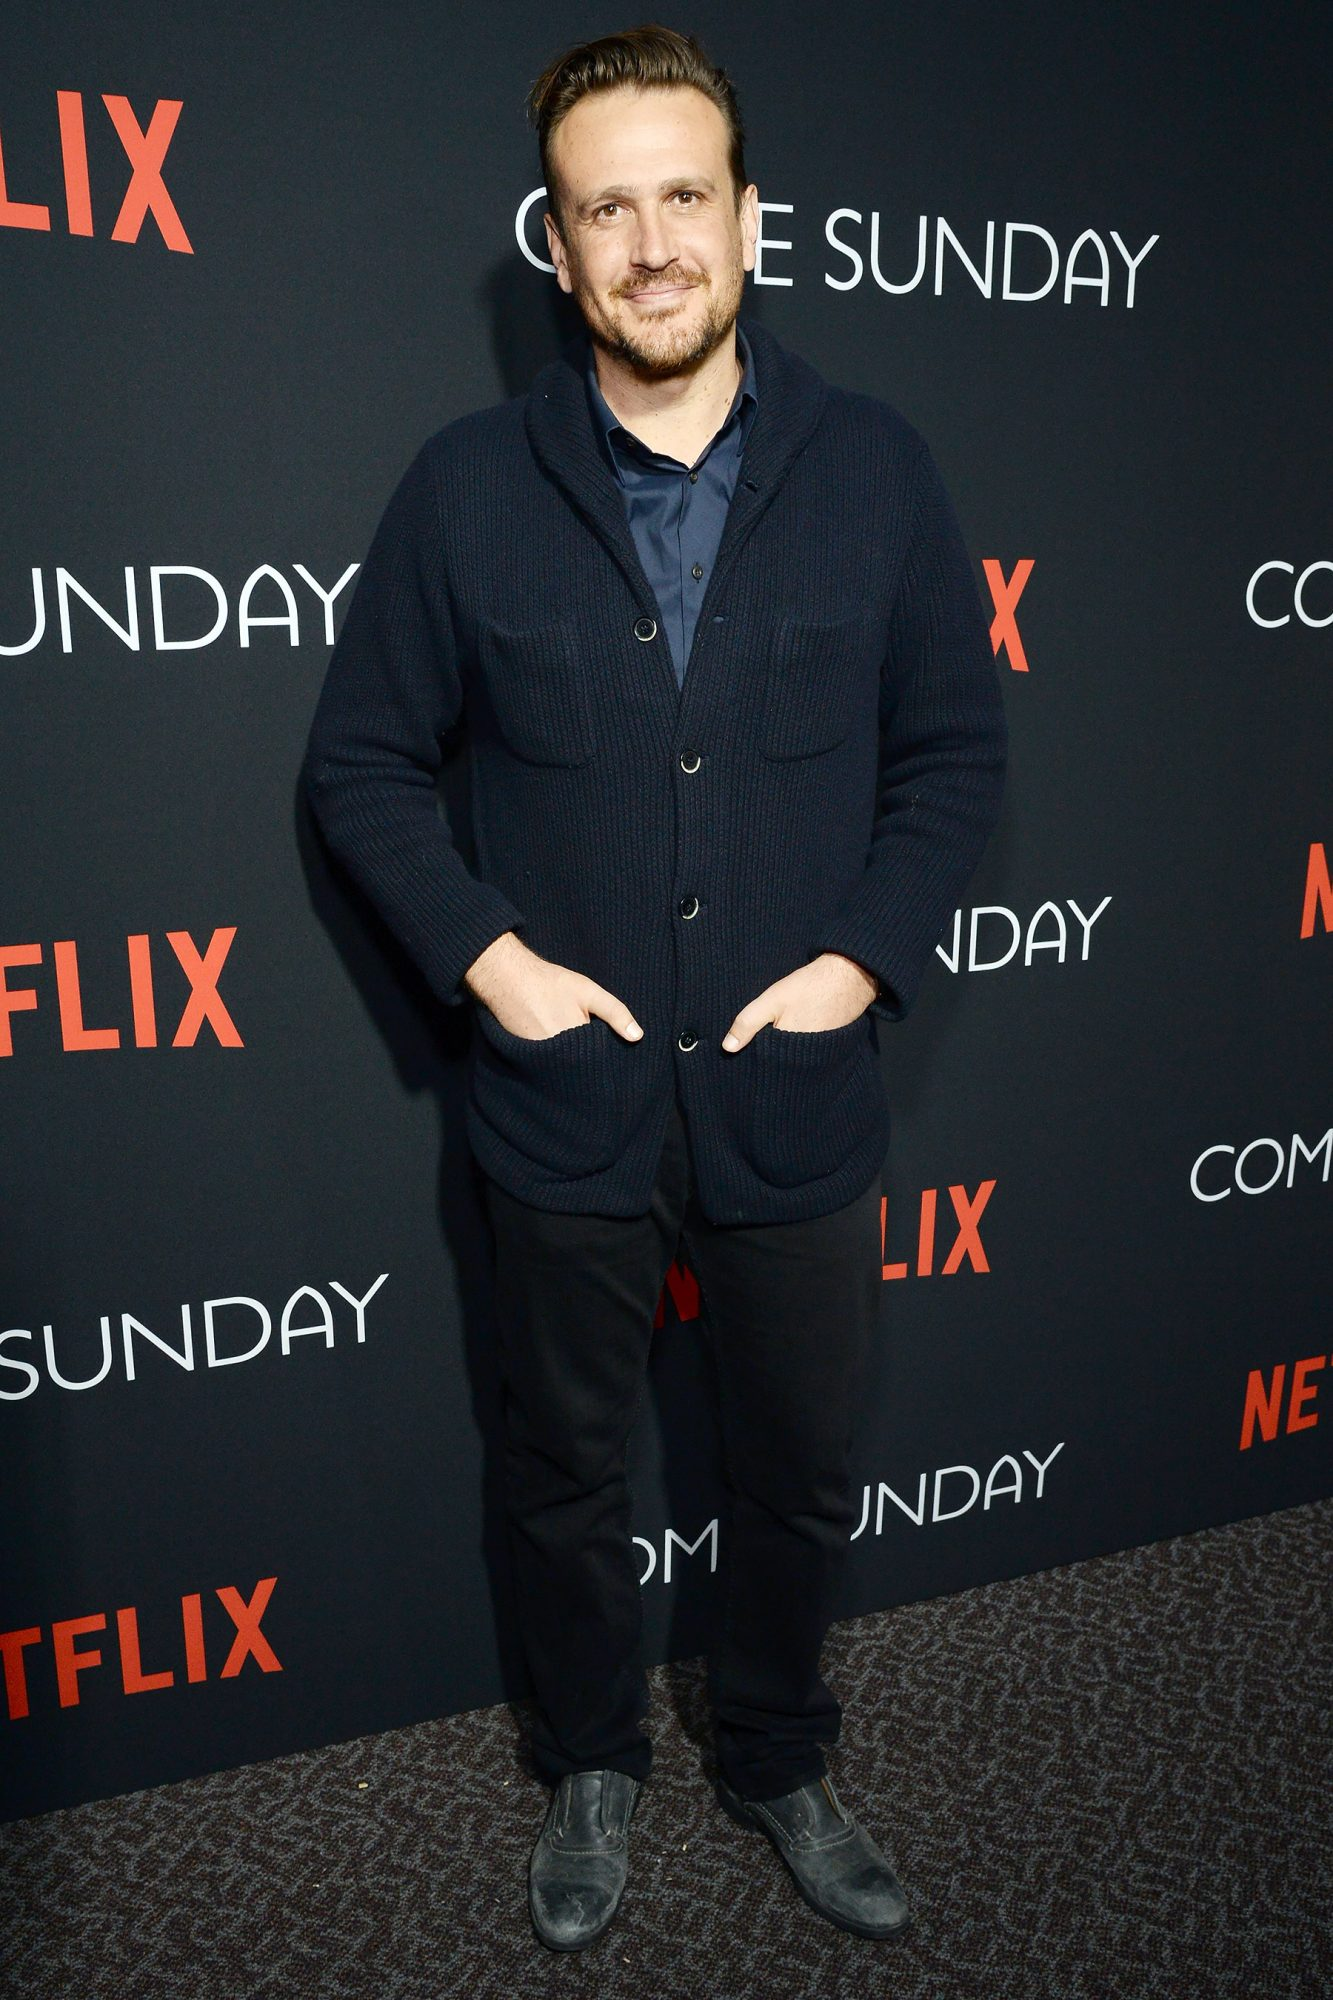 Special Screening of the Netflix Film Come Sunday at the Directors Guild of America Theater in Los Angeles